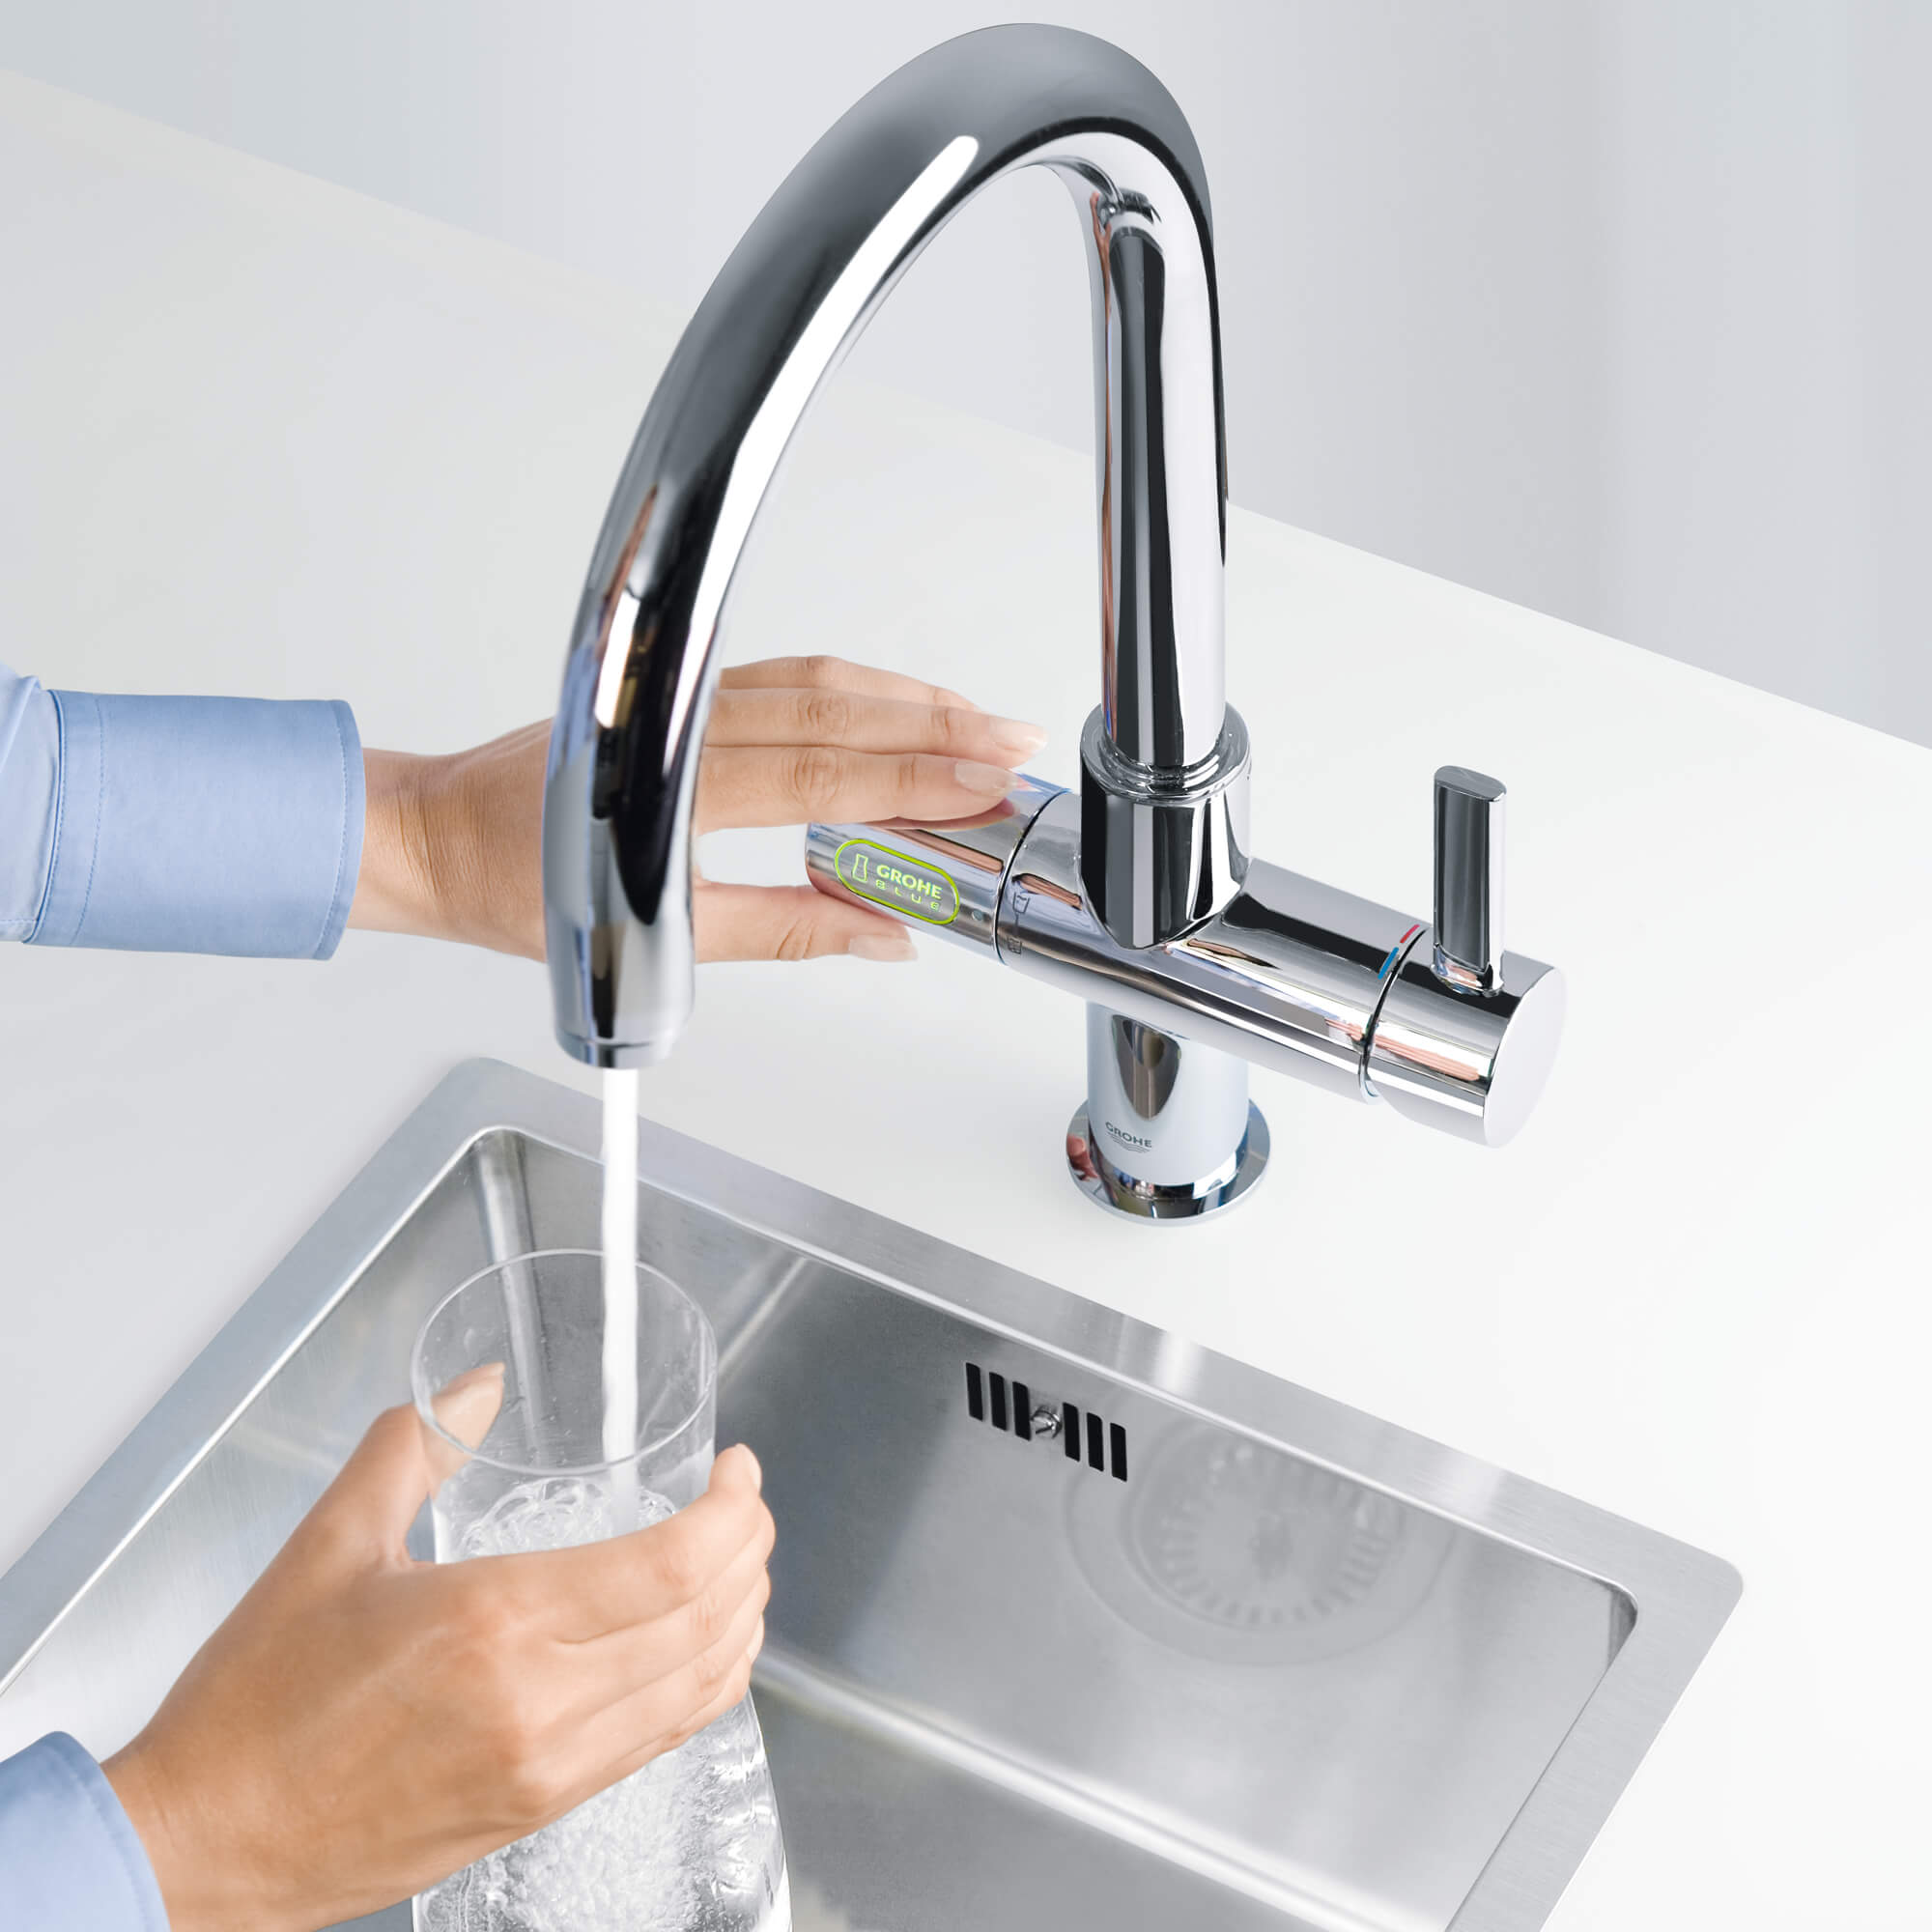 filling up water bottle with Grohe Blue faucet